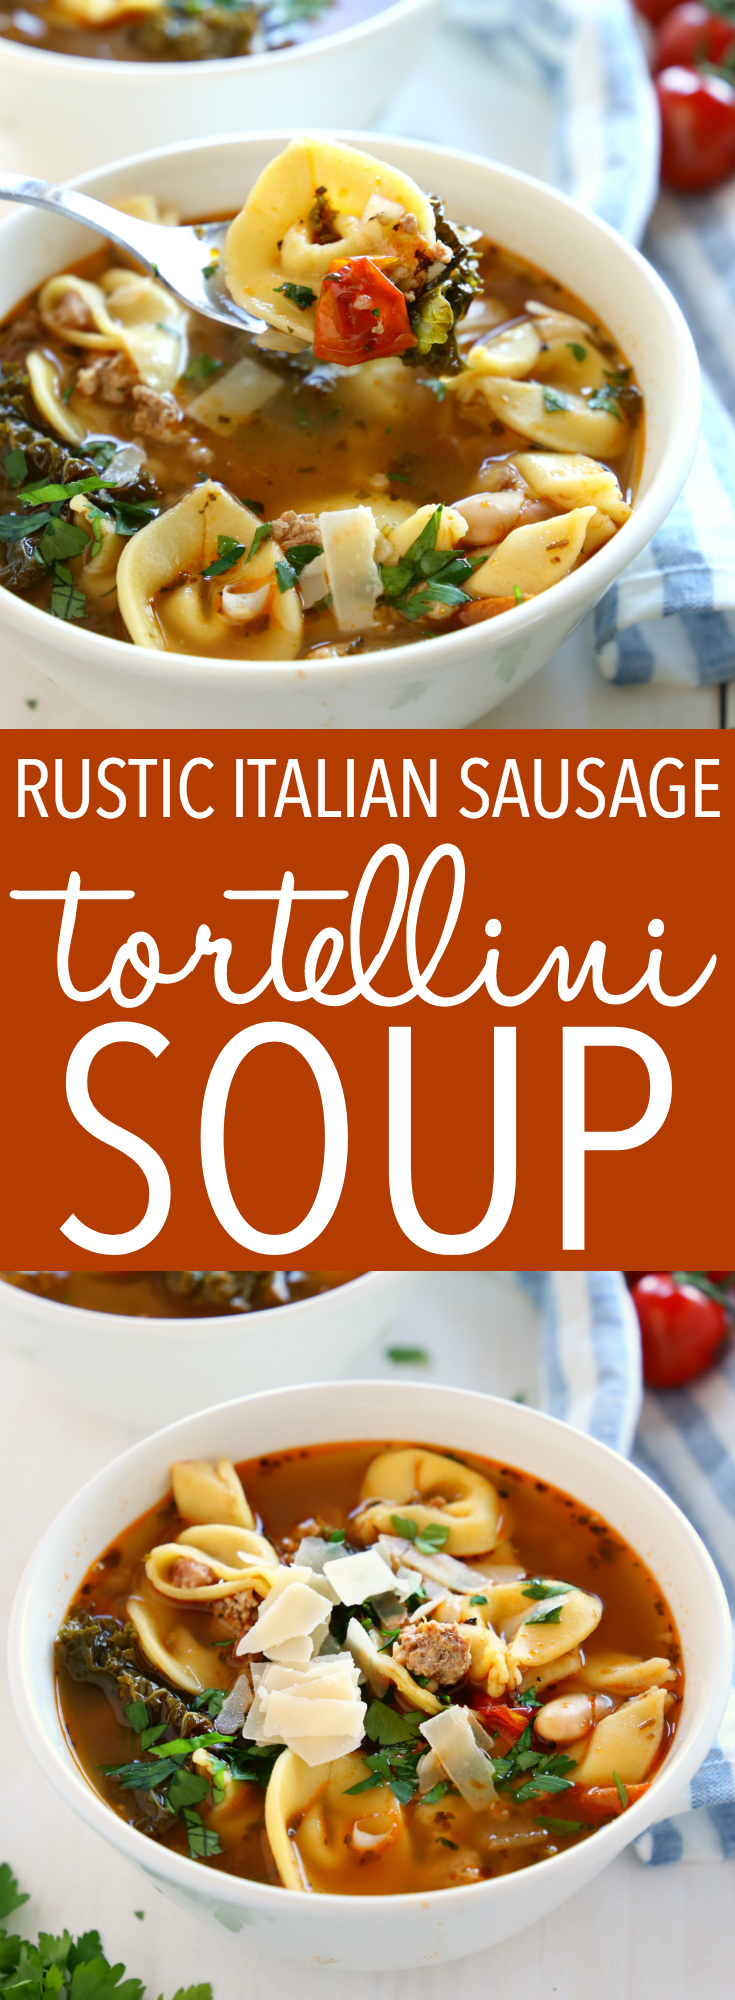 This Rustic Italian Sausage Tortellini Soup is packed with fresh, wholesome ingredients and bursting with Italian flavours. It's hearty, filling, and is so easy to make! Recipe from thebusybaker.ca! #italiansoup #tortellinisoup #rusticsoup #easysouprecipe via @busybakerblog